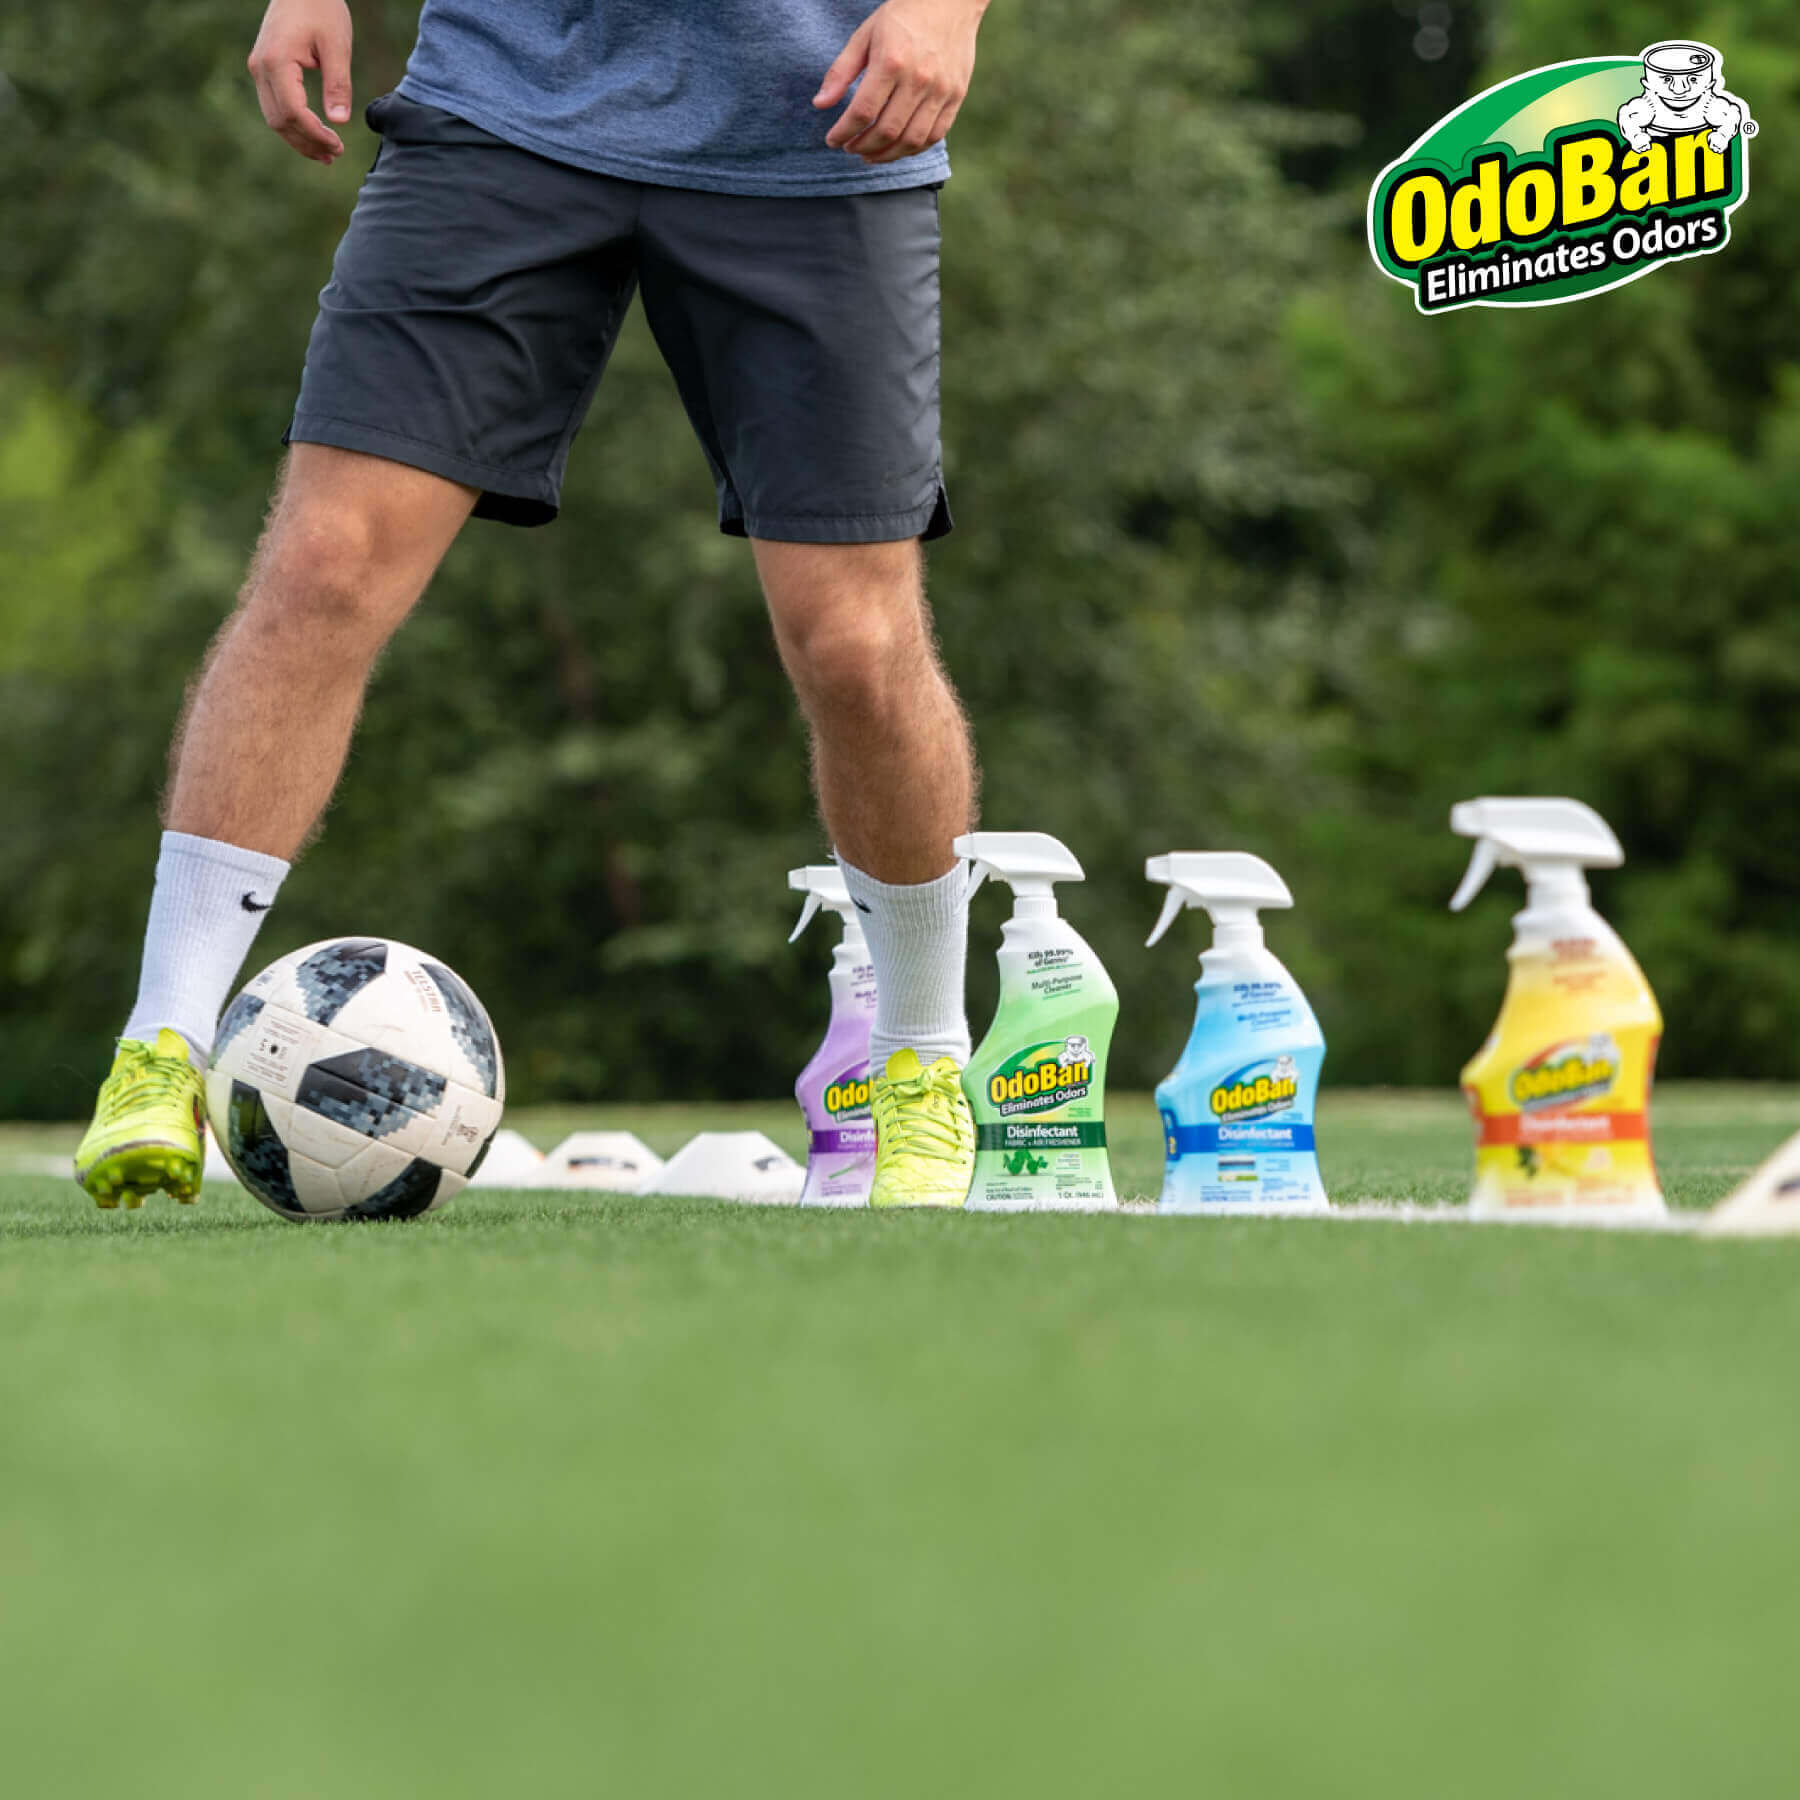 Man dribbling soccer ball between OdoBan products.